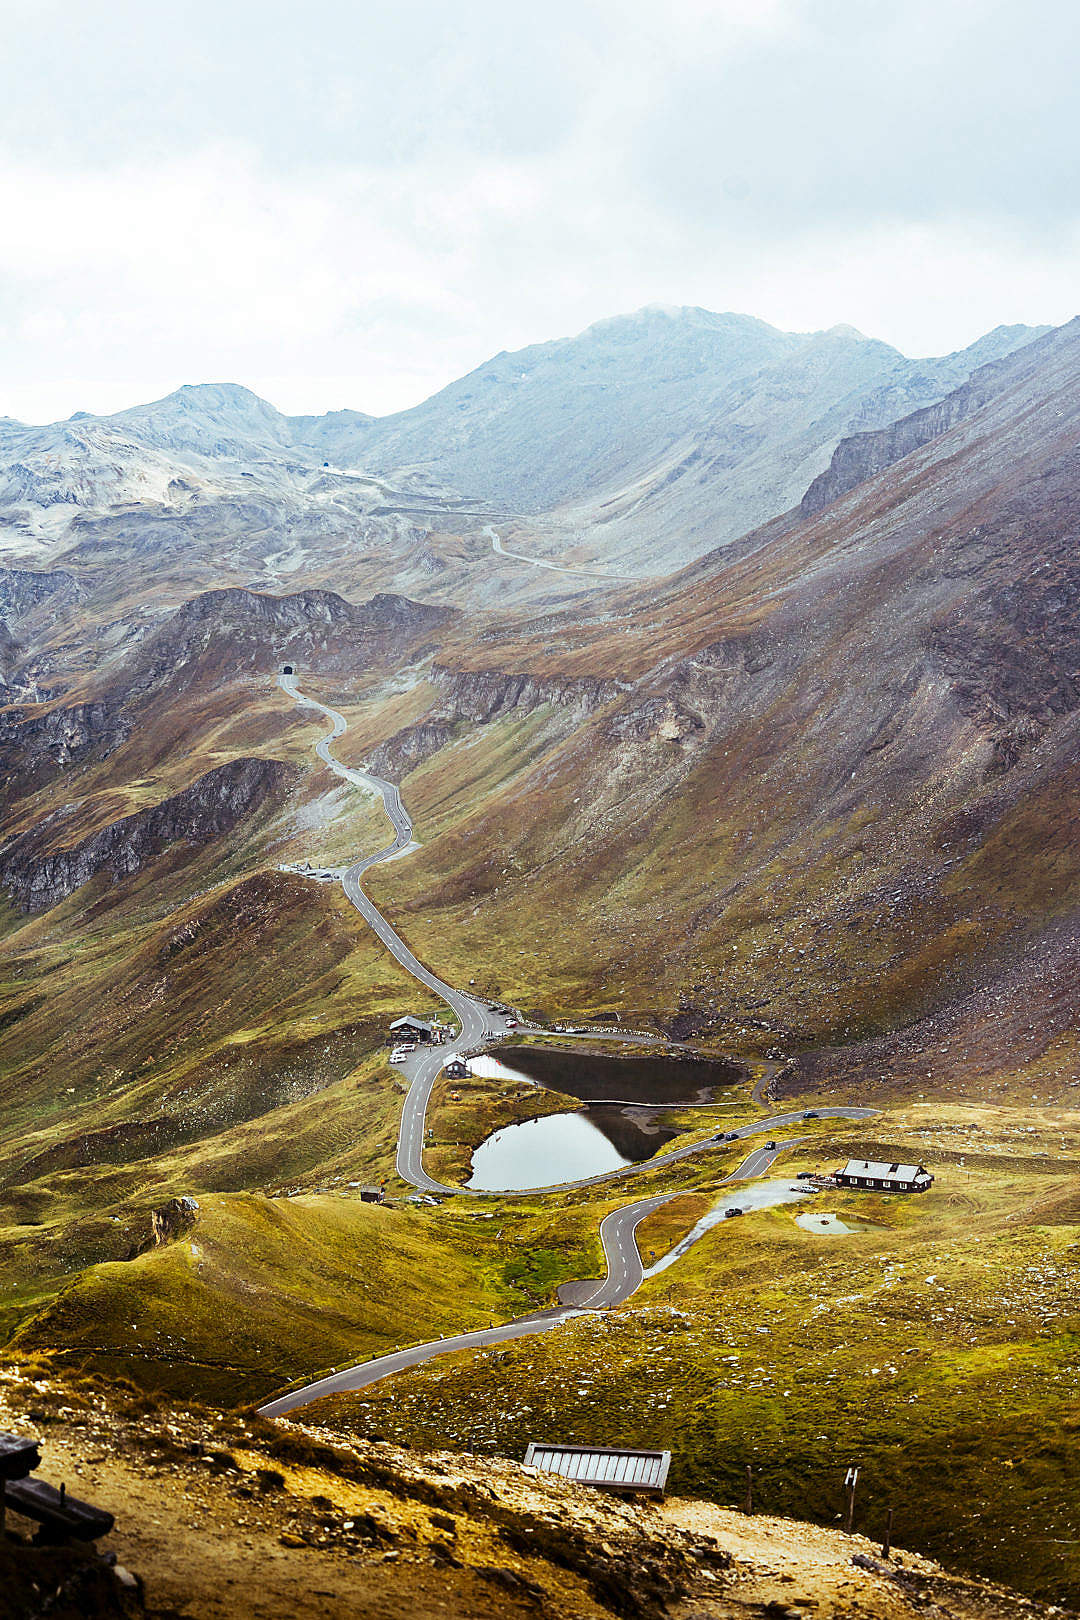 Download Grossglockner Vertical FREE Stock Photo